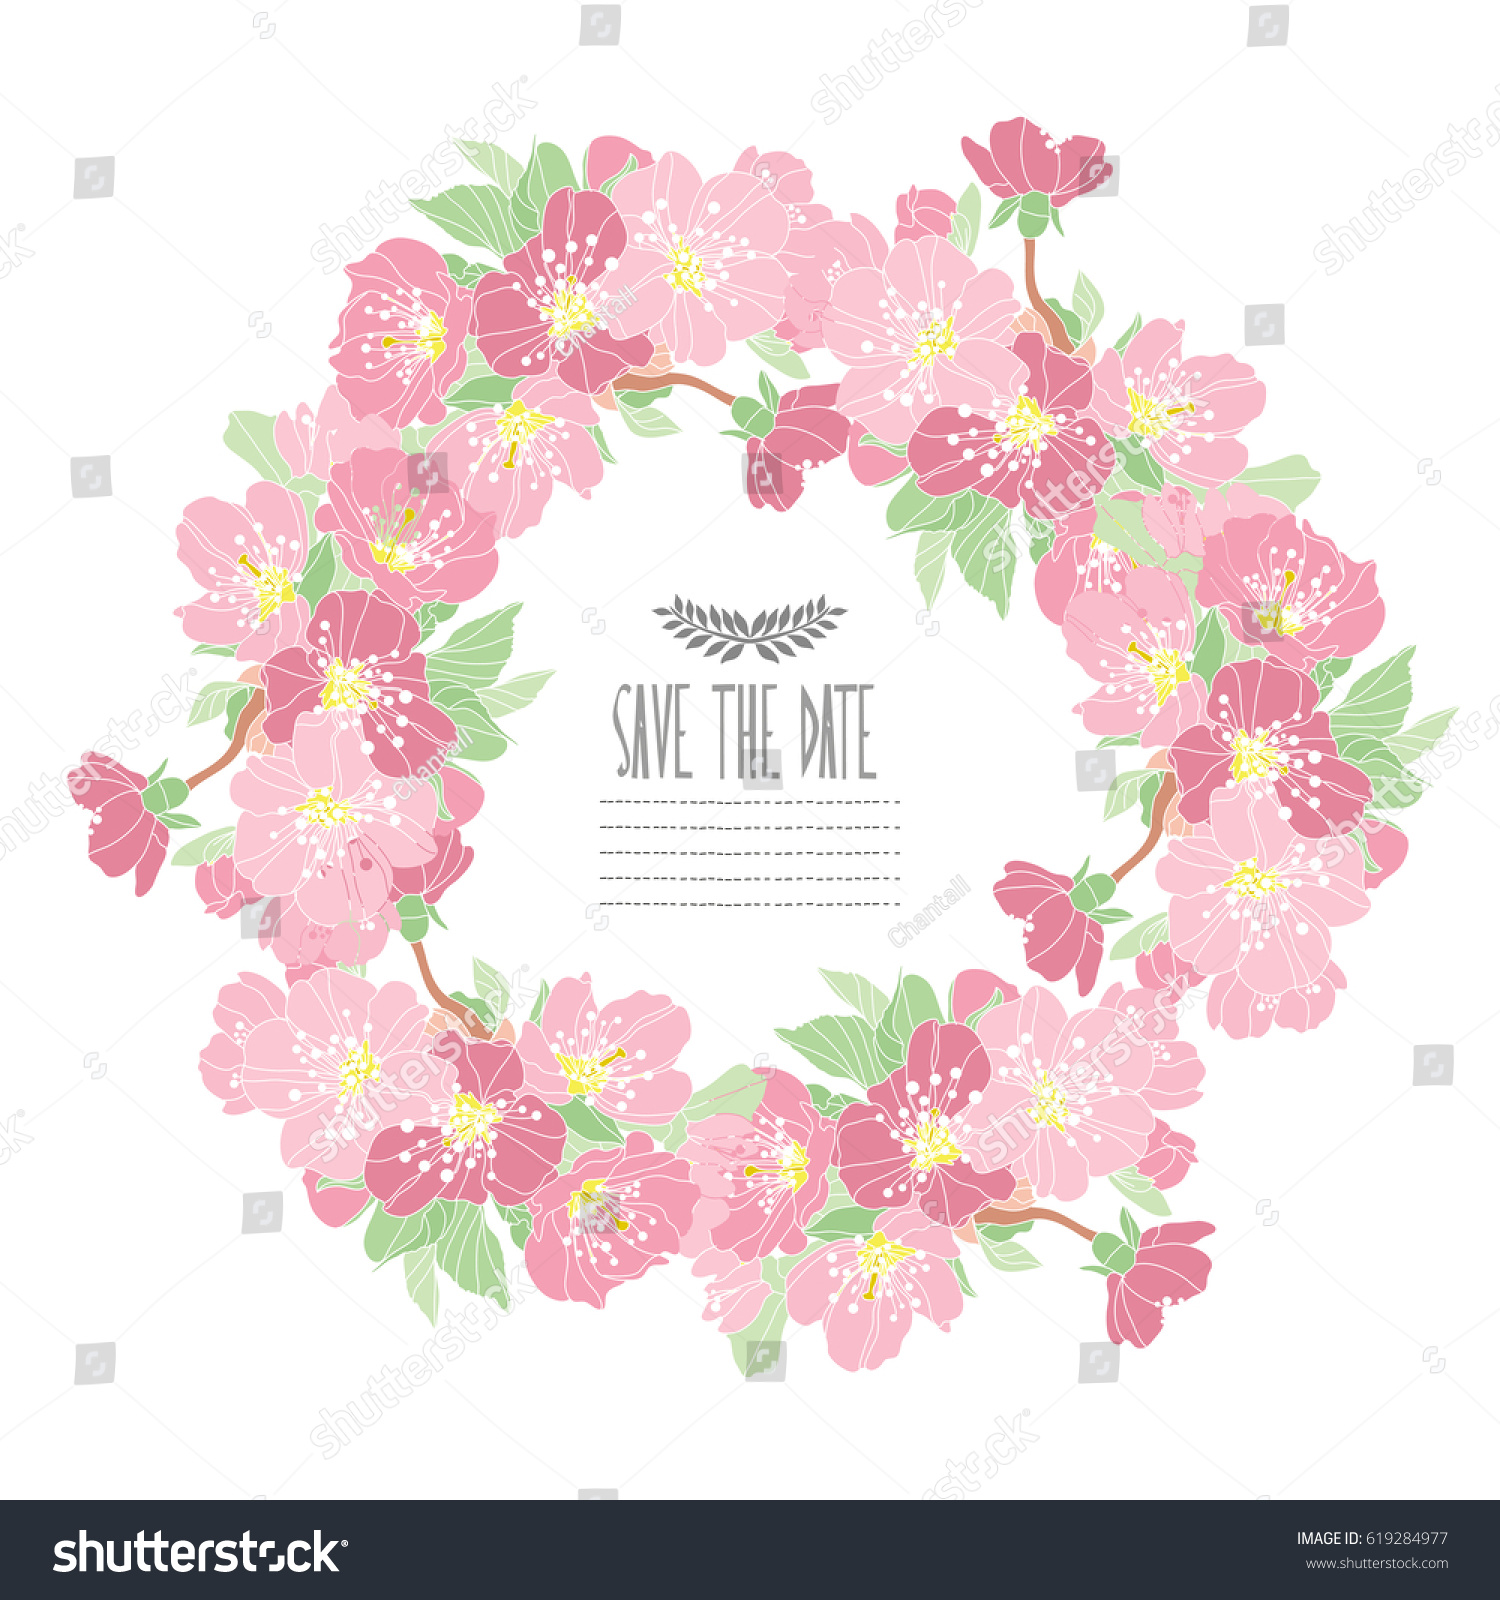 Elegant Wreath Decorative Cherry Blossom Flowers Stock Vector HD ...